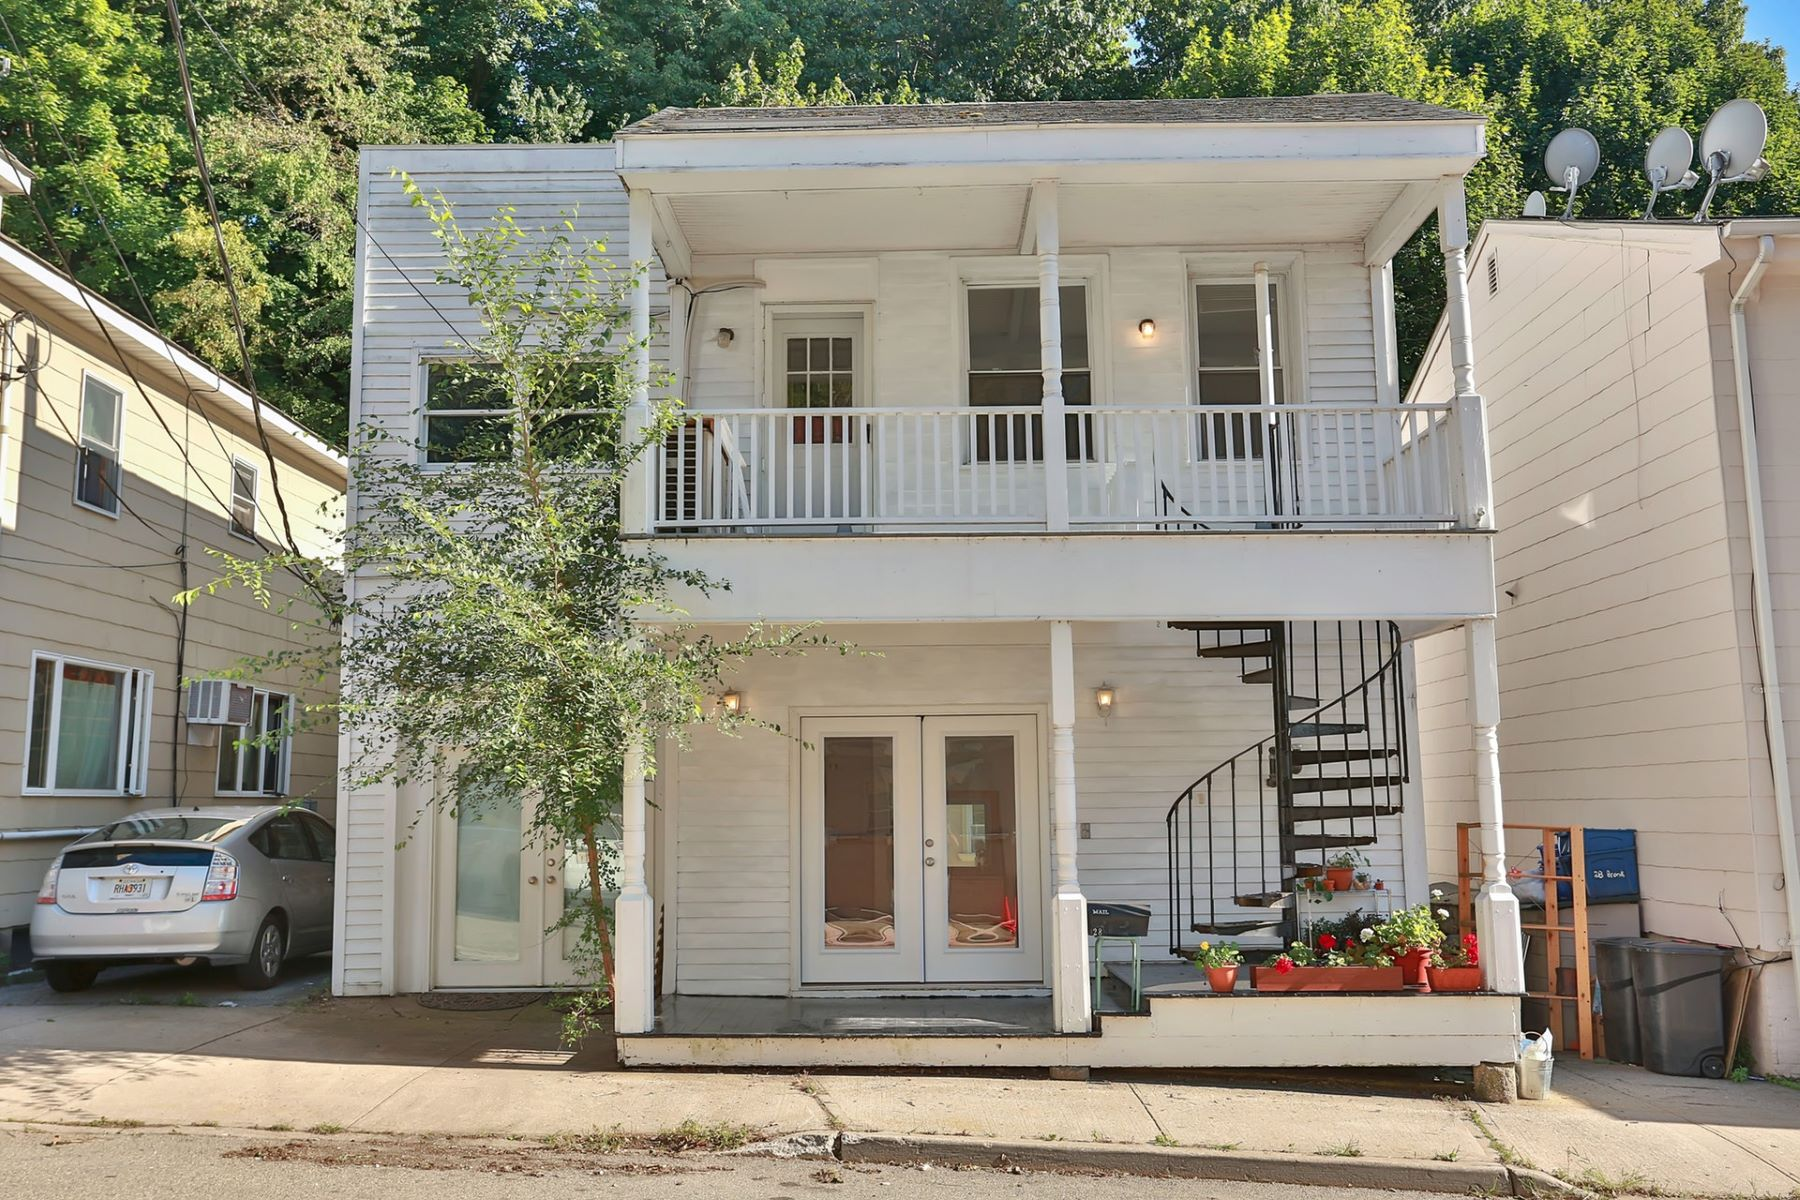 Multi-Family Homes for Sale at SoHo North 28 Brook Street Croton On Hudson, New York 10520 United States